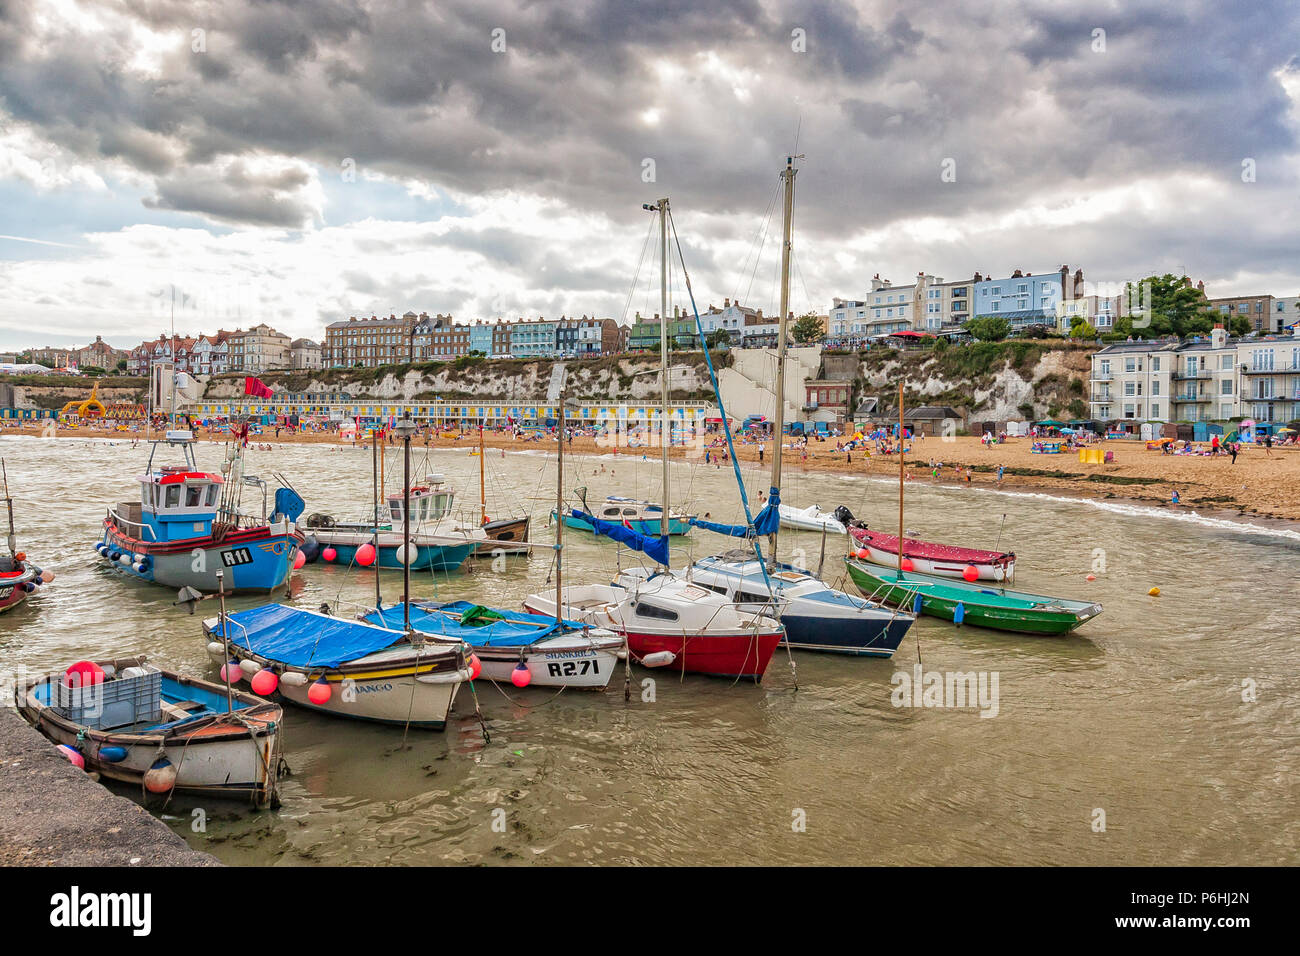 Boats moored in harbour at Viking Bay, Broadstairs, Kent, England - Stock Image